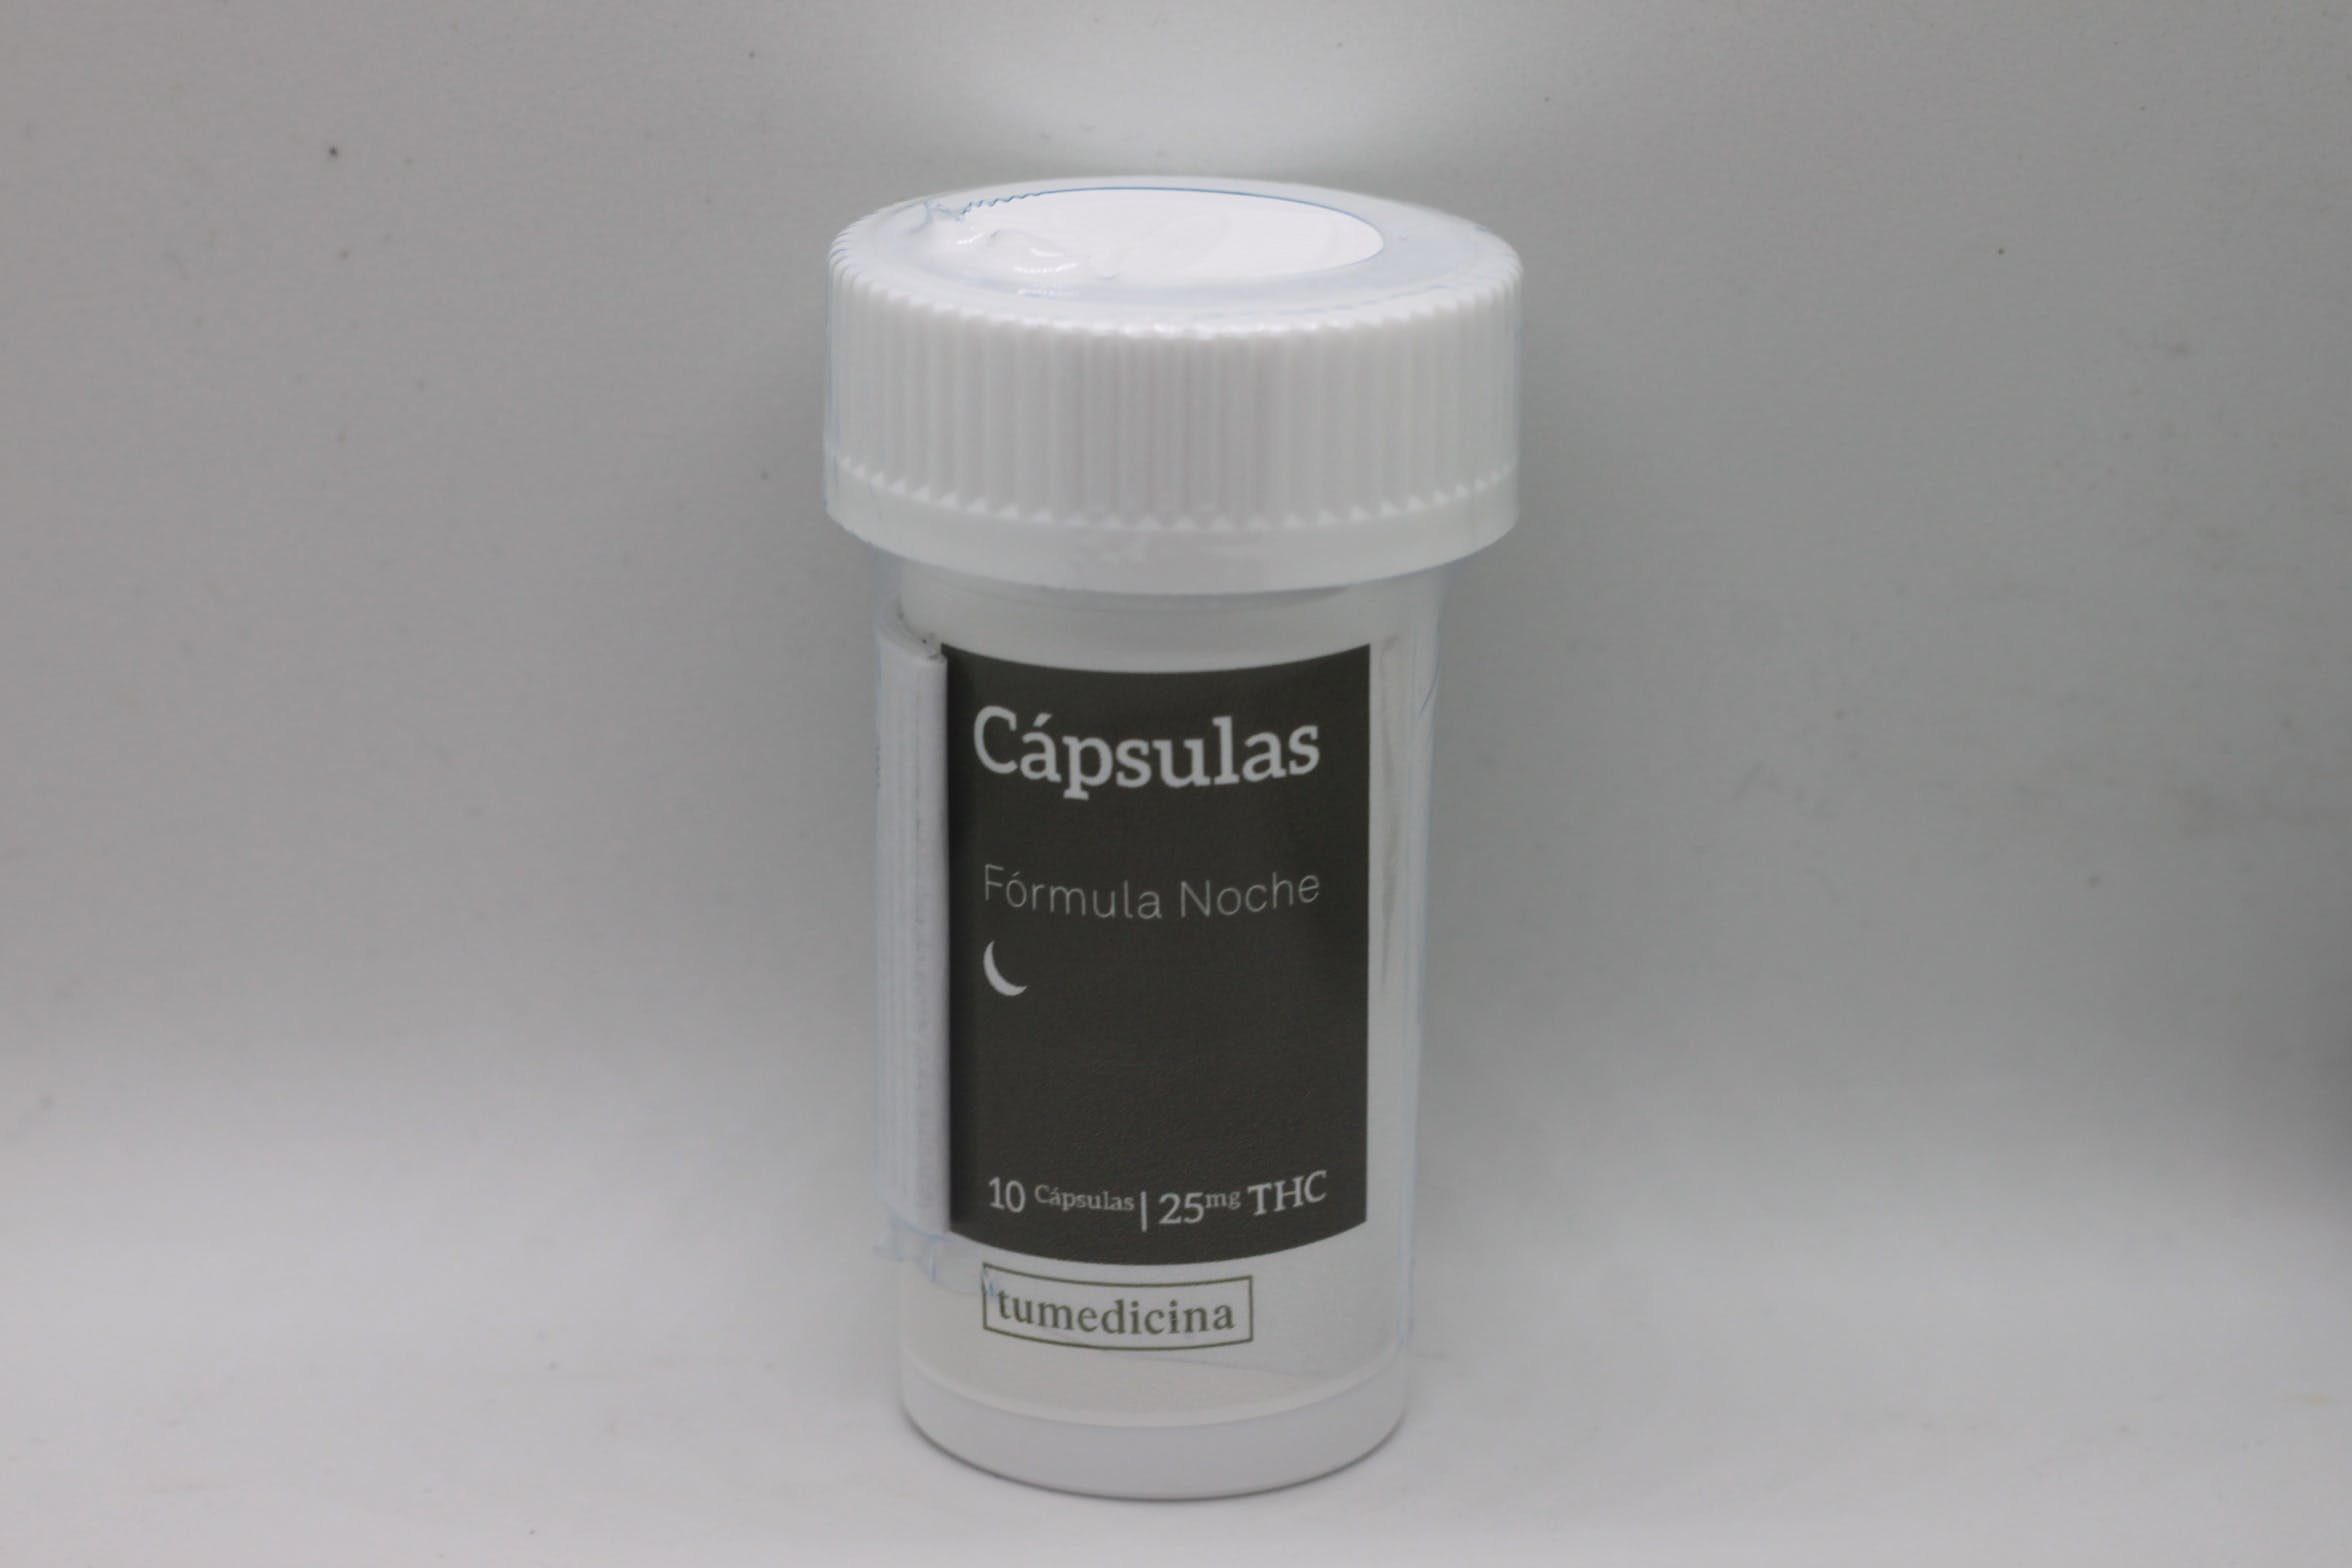 edible-cima-capsulas-night-25mg10capsulas